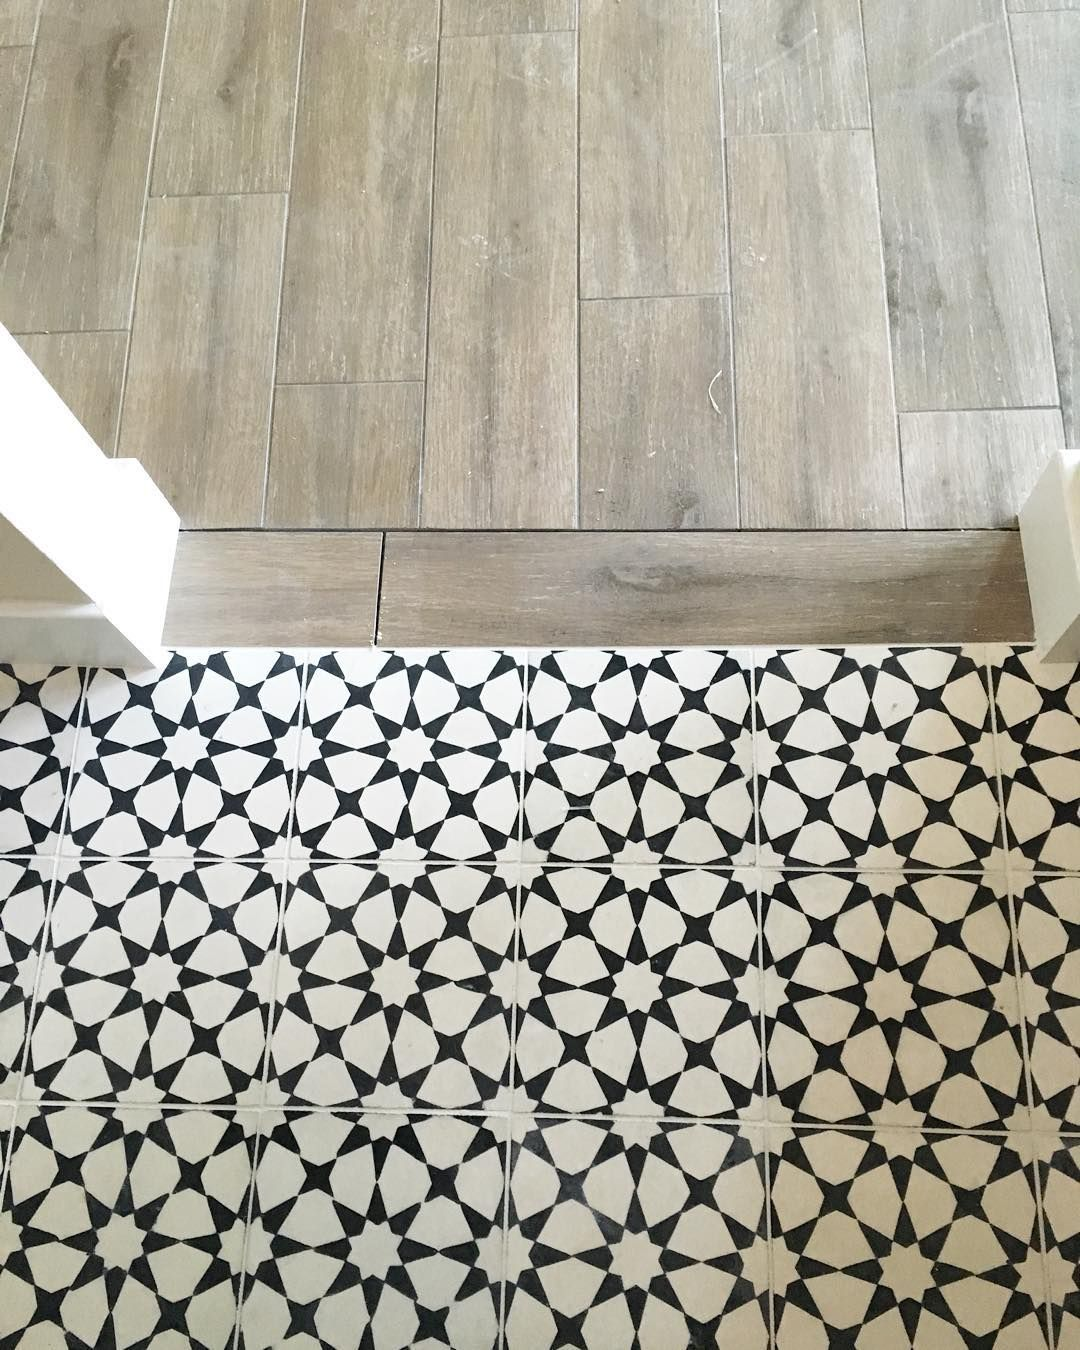 Cement bathroom tiles - Vanessa Matsalla Wood To Cement Tile Transition